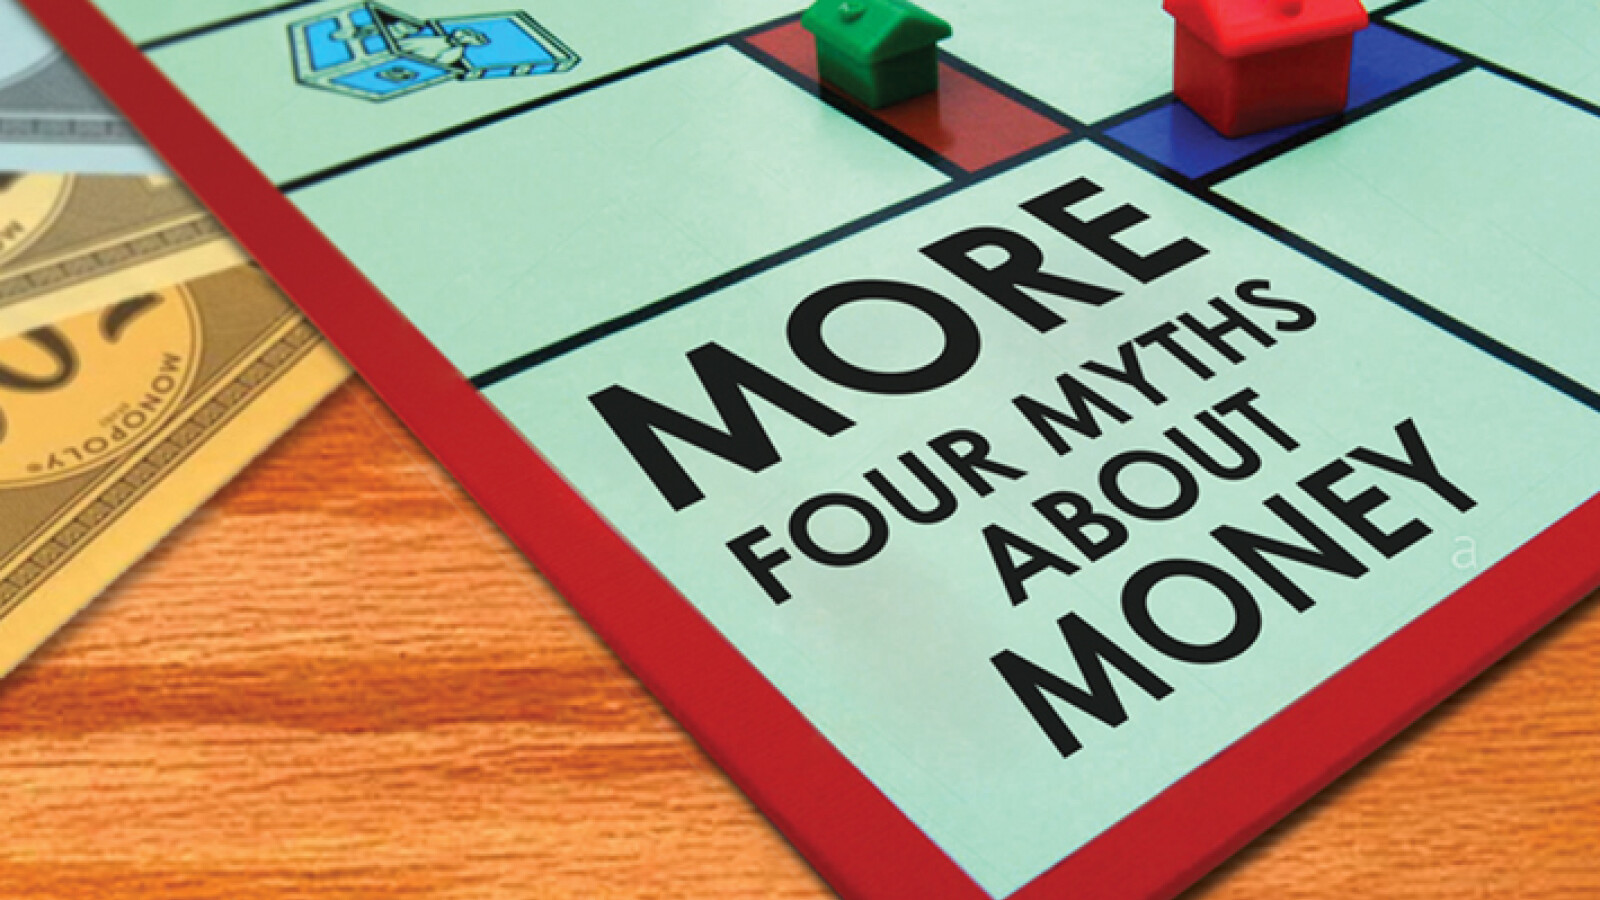 More - Four Myths About Money